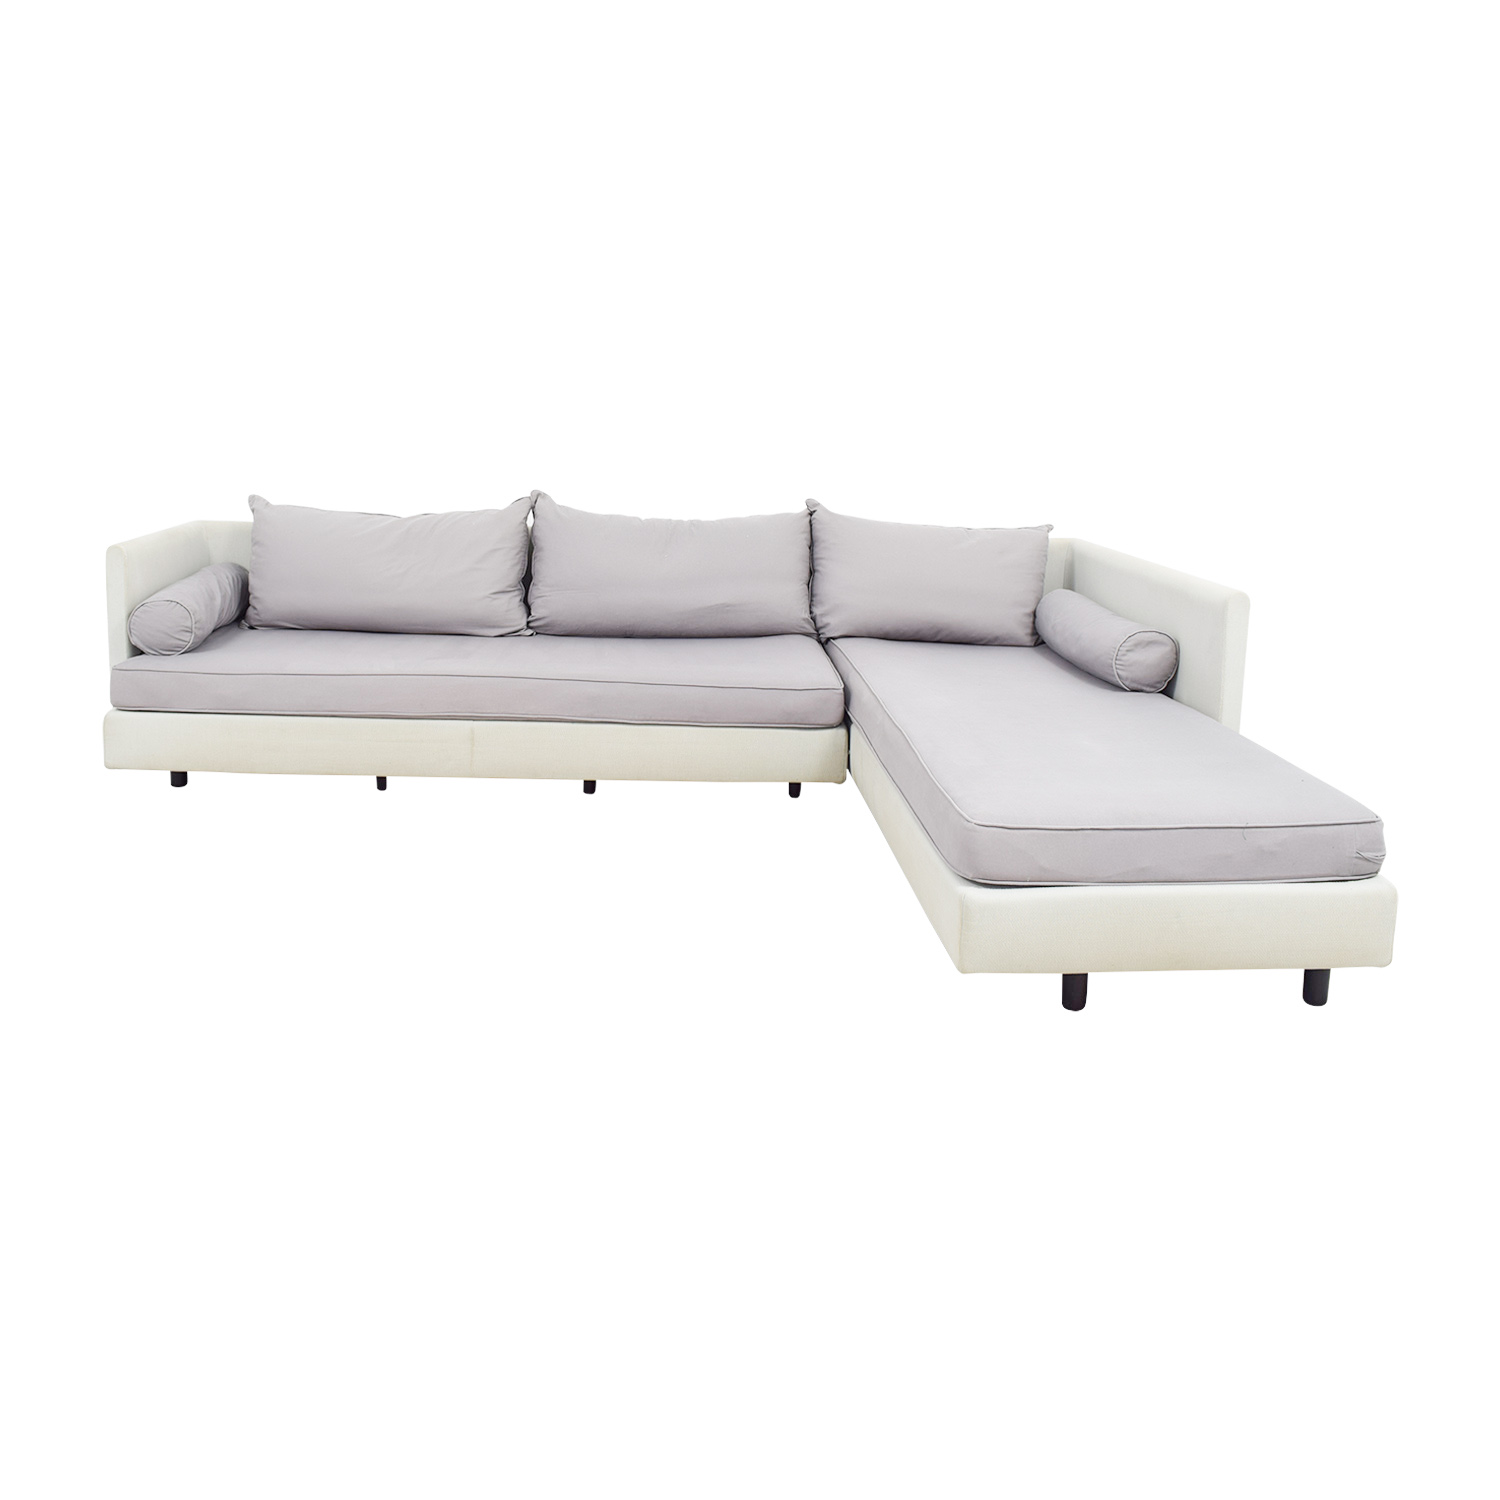 roset ligne sofa sofas ligne roset official site. Black Bedroom Furniture Sets. Home Design Ideas